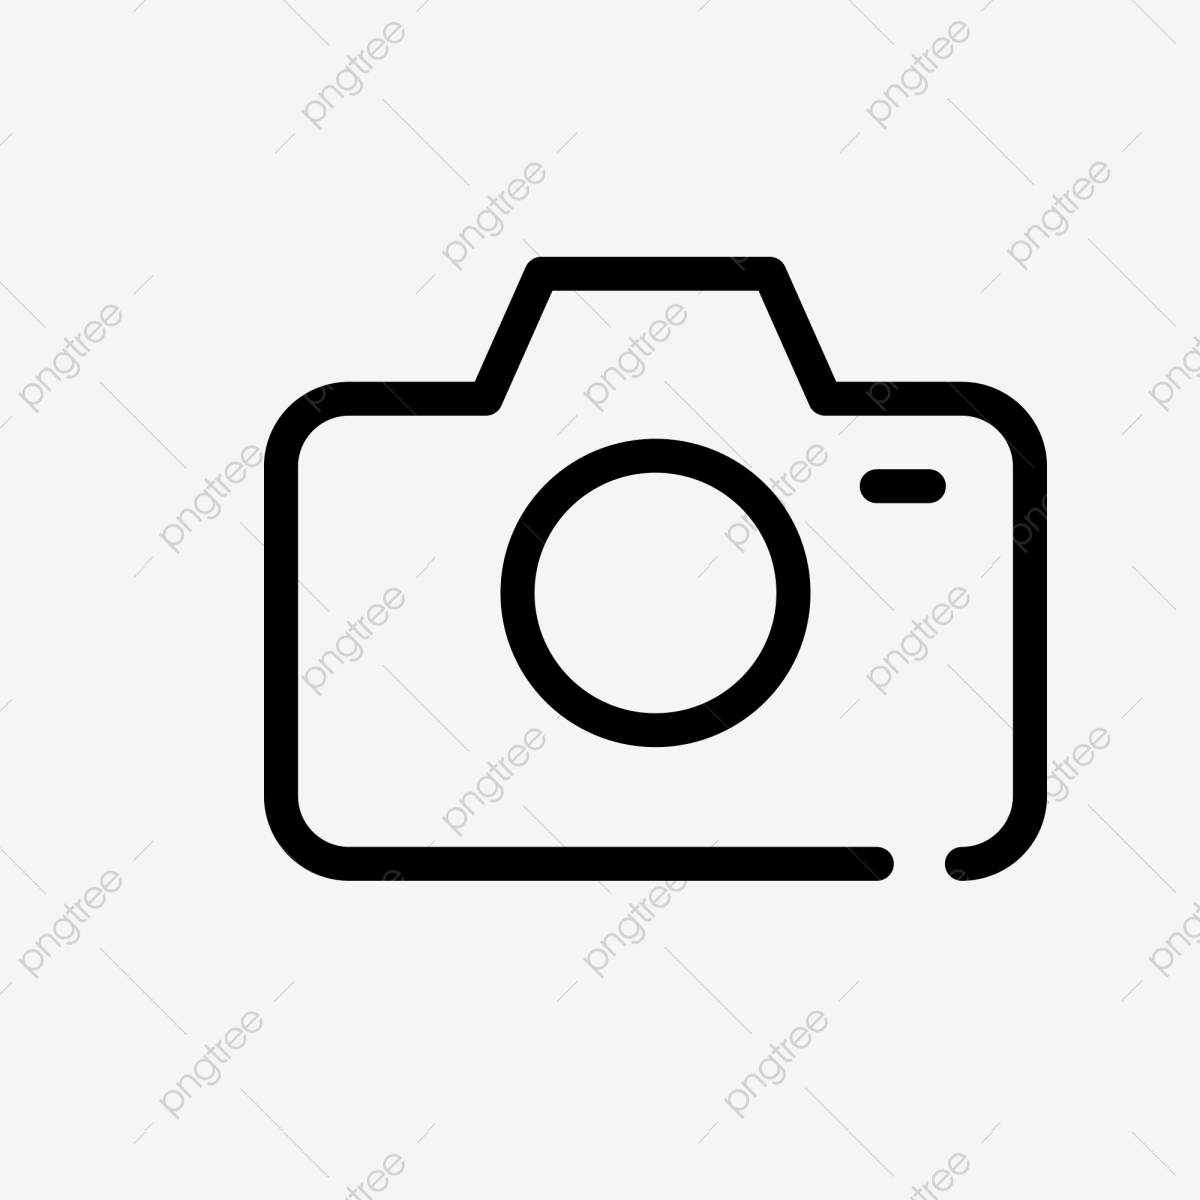 Cartoon Camera Png, Vector, PSD, and Clipart With Transparent Background for Free Download